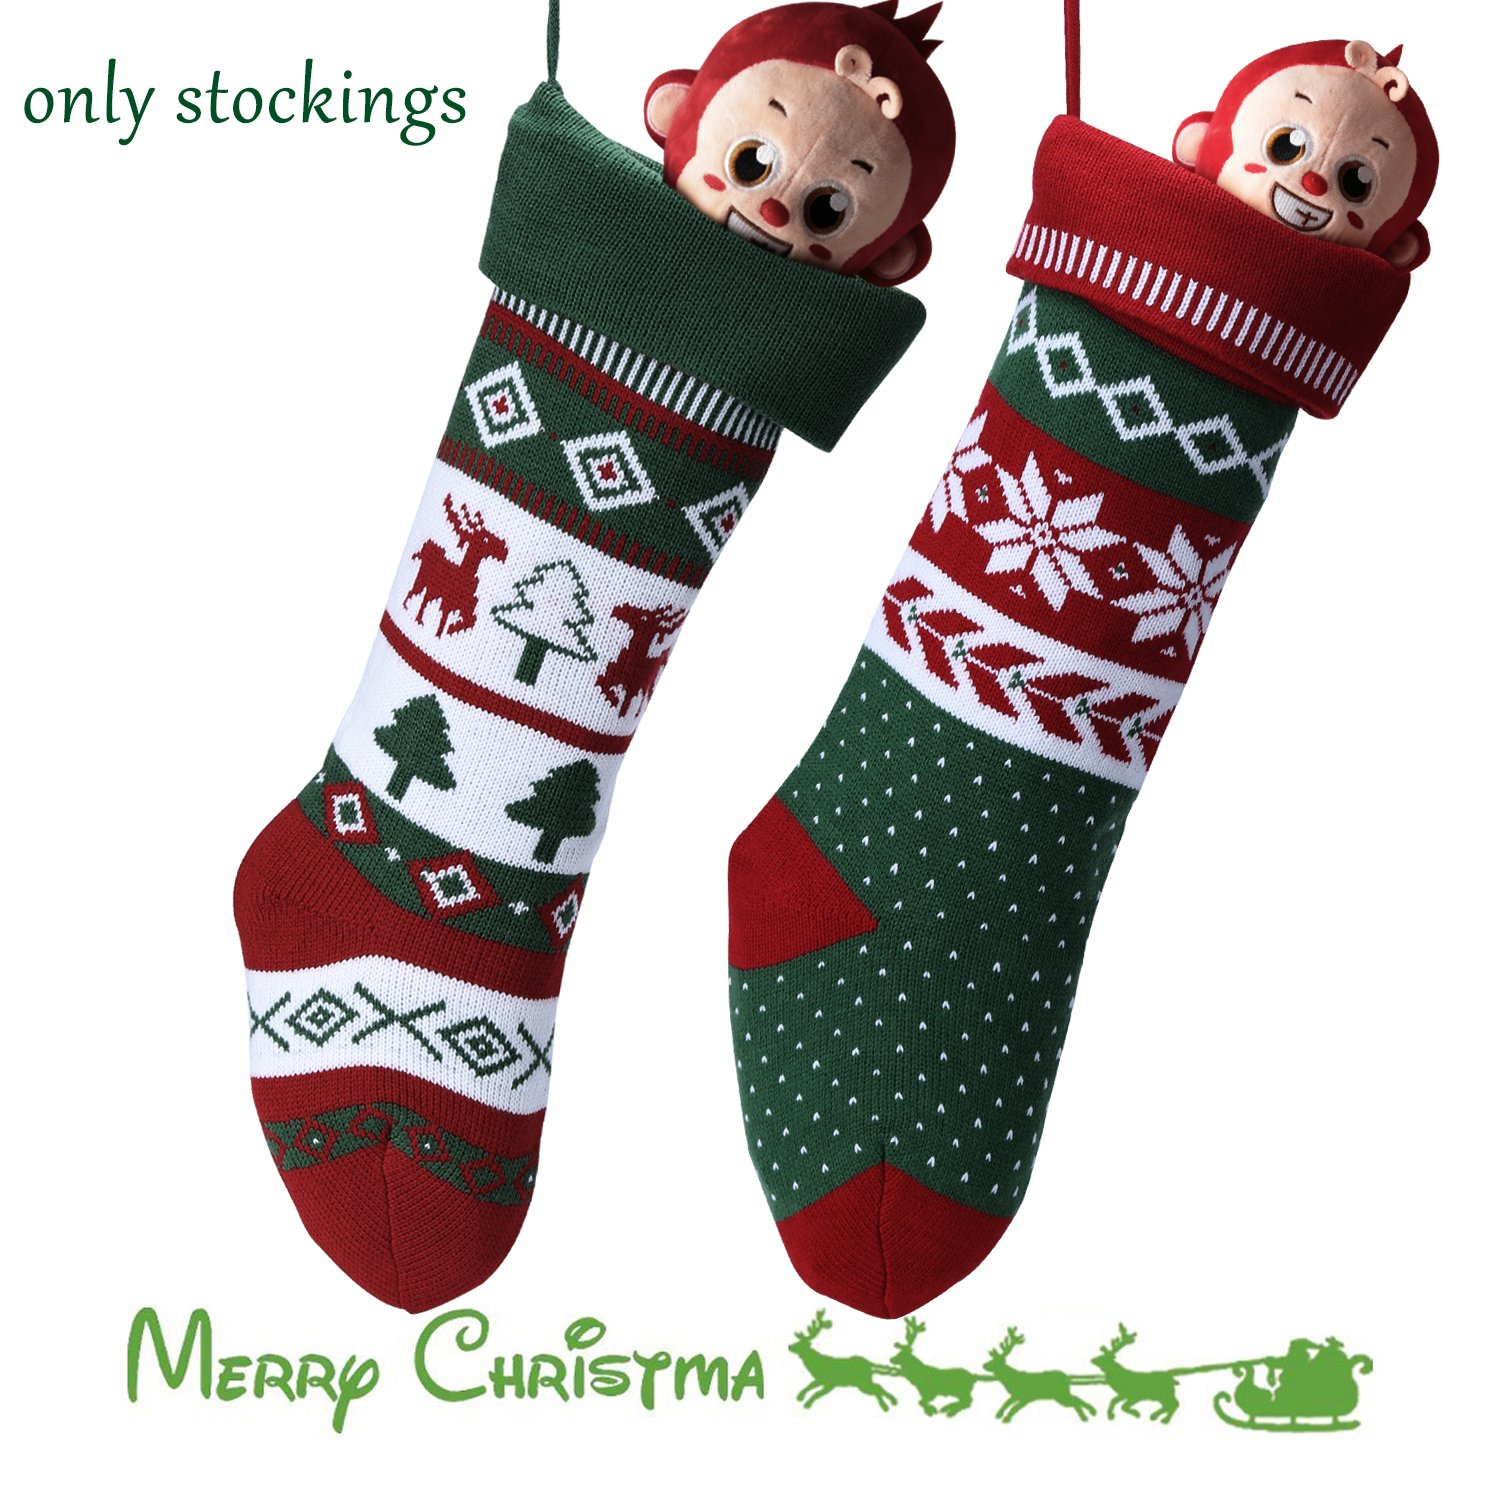 Knit Christmas Stockings for Family 22'' x 7'' Sets of 2 – Red/White/Green Snowflake knitted Hanging Bags - Holiday Gift - Decor,Decorations Christmas Tree,Mantel by Dragon Squama